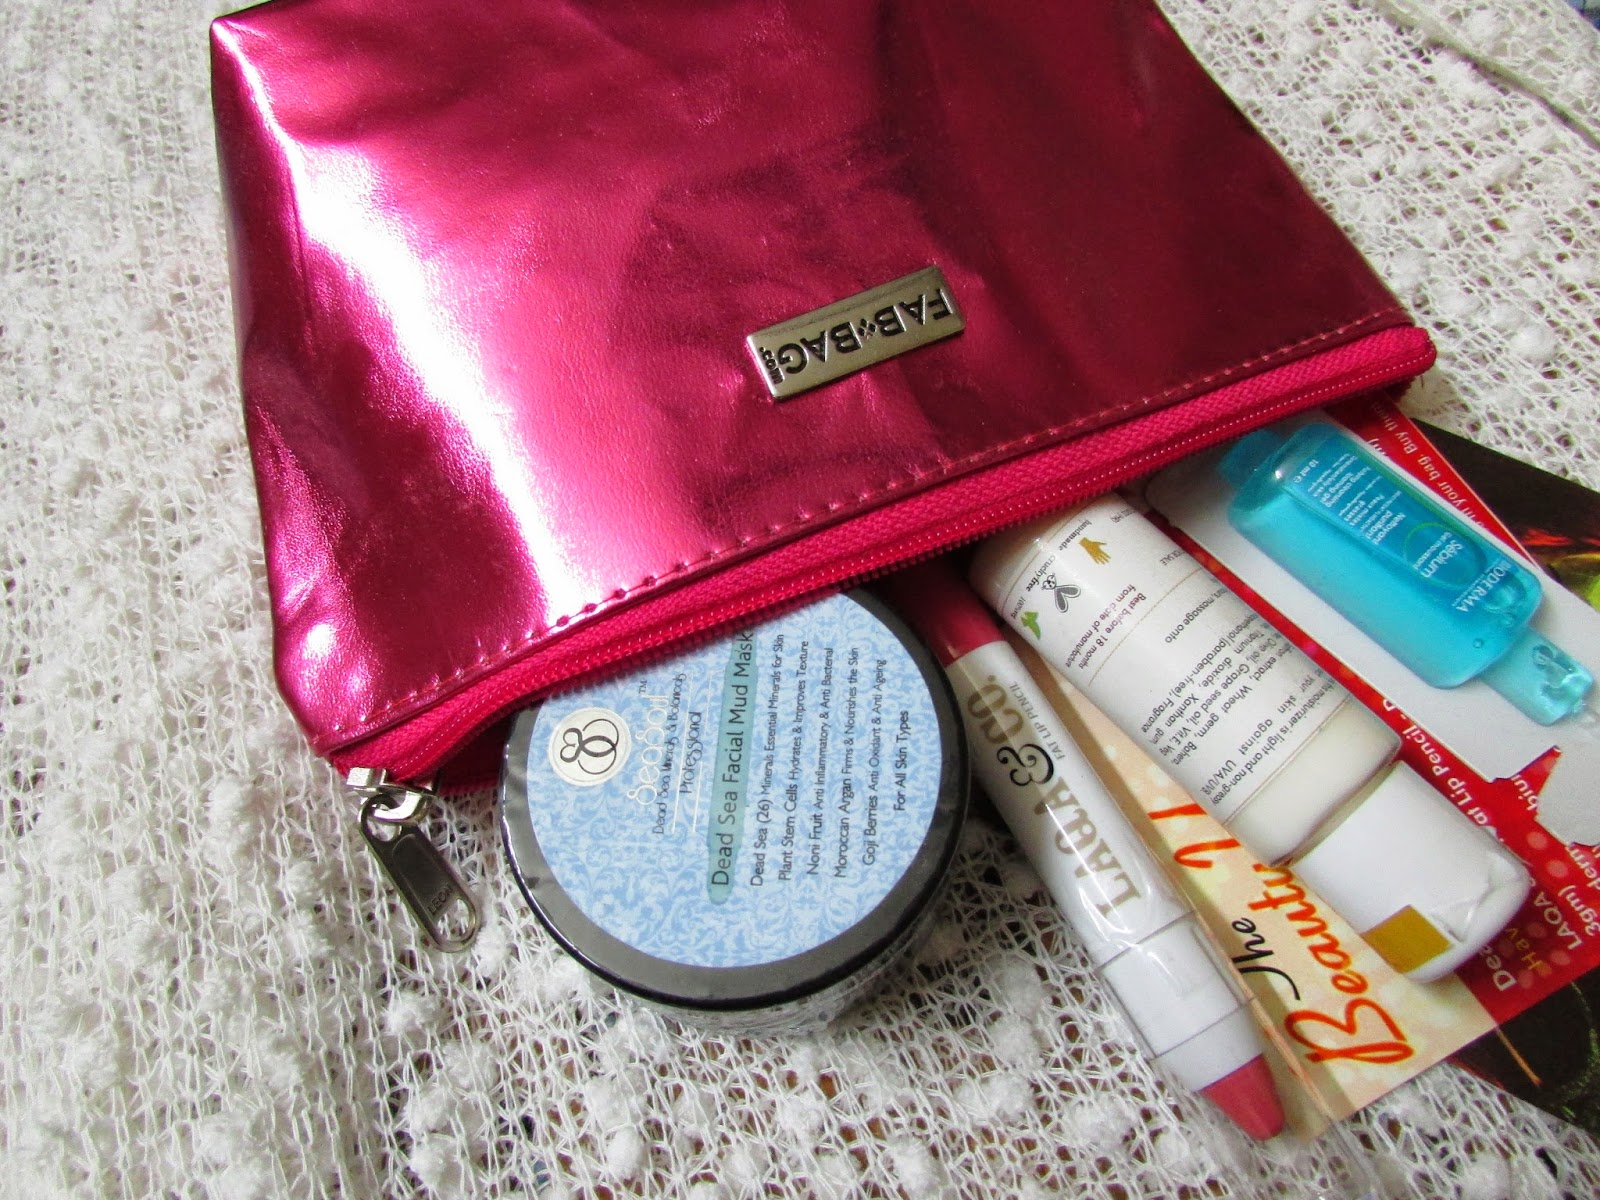 January Fab Bag price, January Fab Bag Review, Fab Bag, Fab Bag india, Fab Bag subscription, Seasoul Dead Skin Facial Mud Mask, Bioderma Sebium Gel Moussant Face Wash, Splurge Daily Moisturizer with Sun Protection, LAQA & Co. Fat Lip Pencil,IndieEco, Kronokare, makeup monthly subscription service, ,beauty , fashion,beauty and fashion,beauty blog, fashion blog , indian beauty blog,indian fashion blog, beauty and fashion blog, indian beauty and fashion blog, indian bloggers, indian beauty bloggers, indian fashion bloggers,indian bloggers online, top 10 indian bloggers, top indian bloggers,top 10 fashion bloggers, indian bloggers on blogspot,home remedies, how to